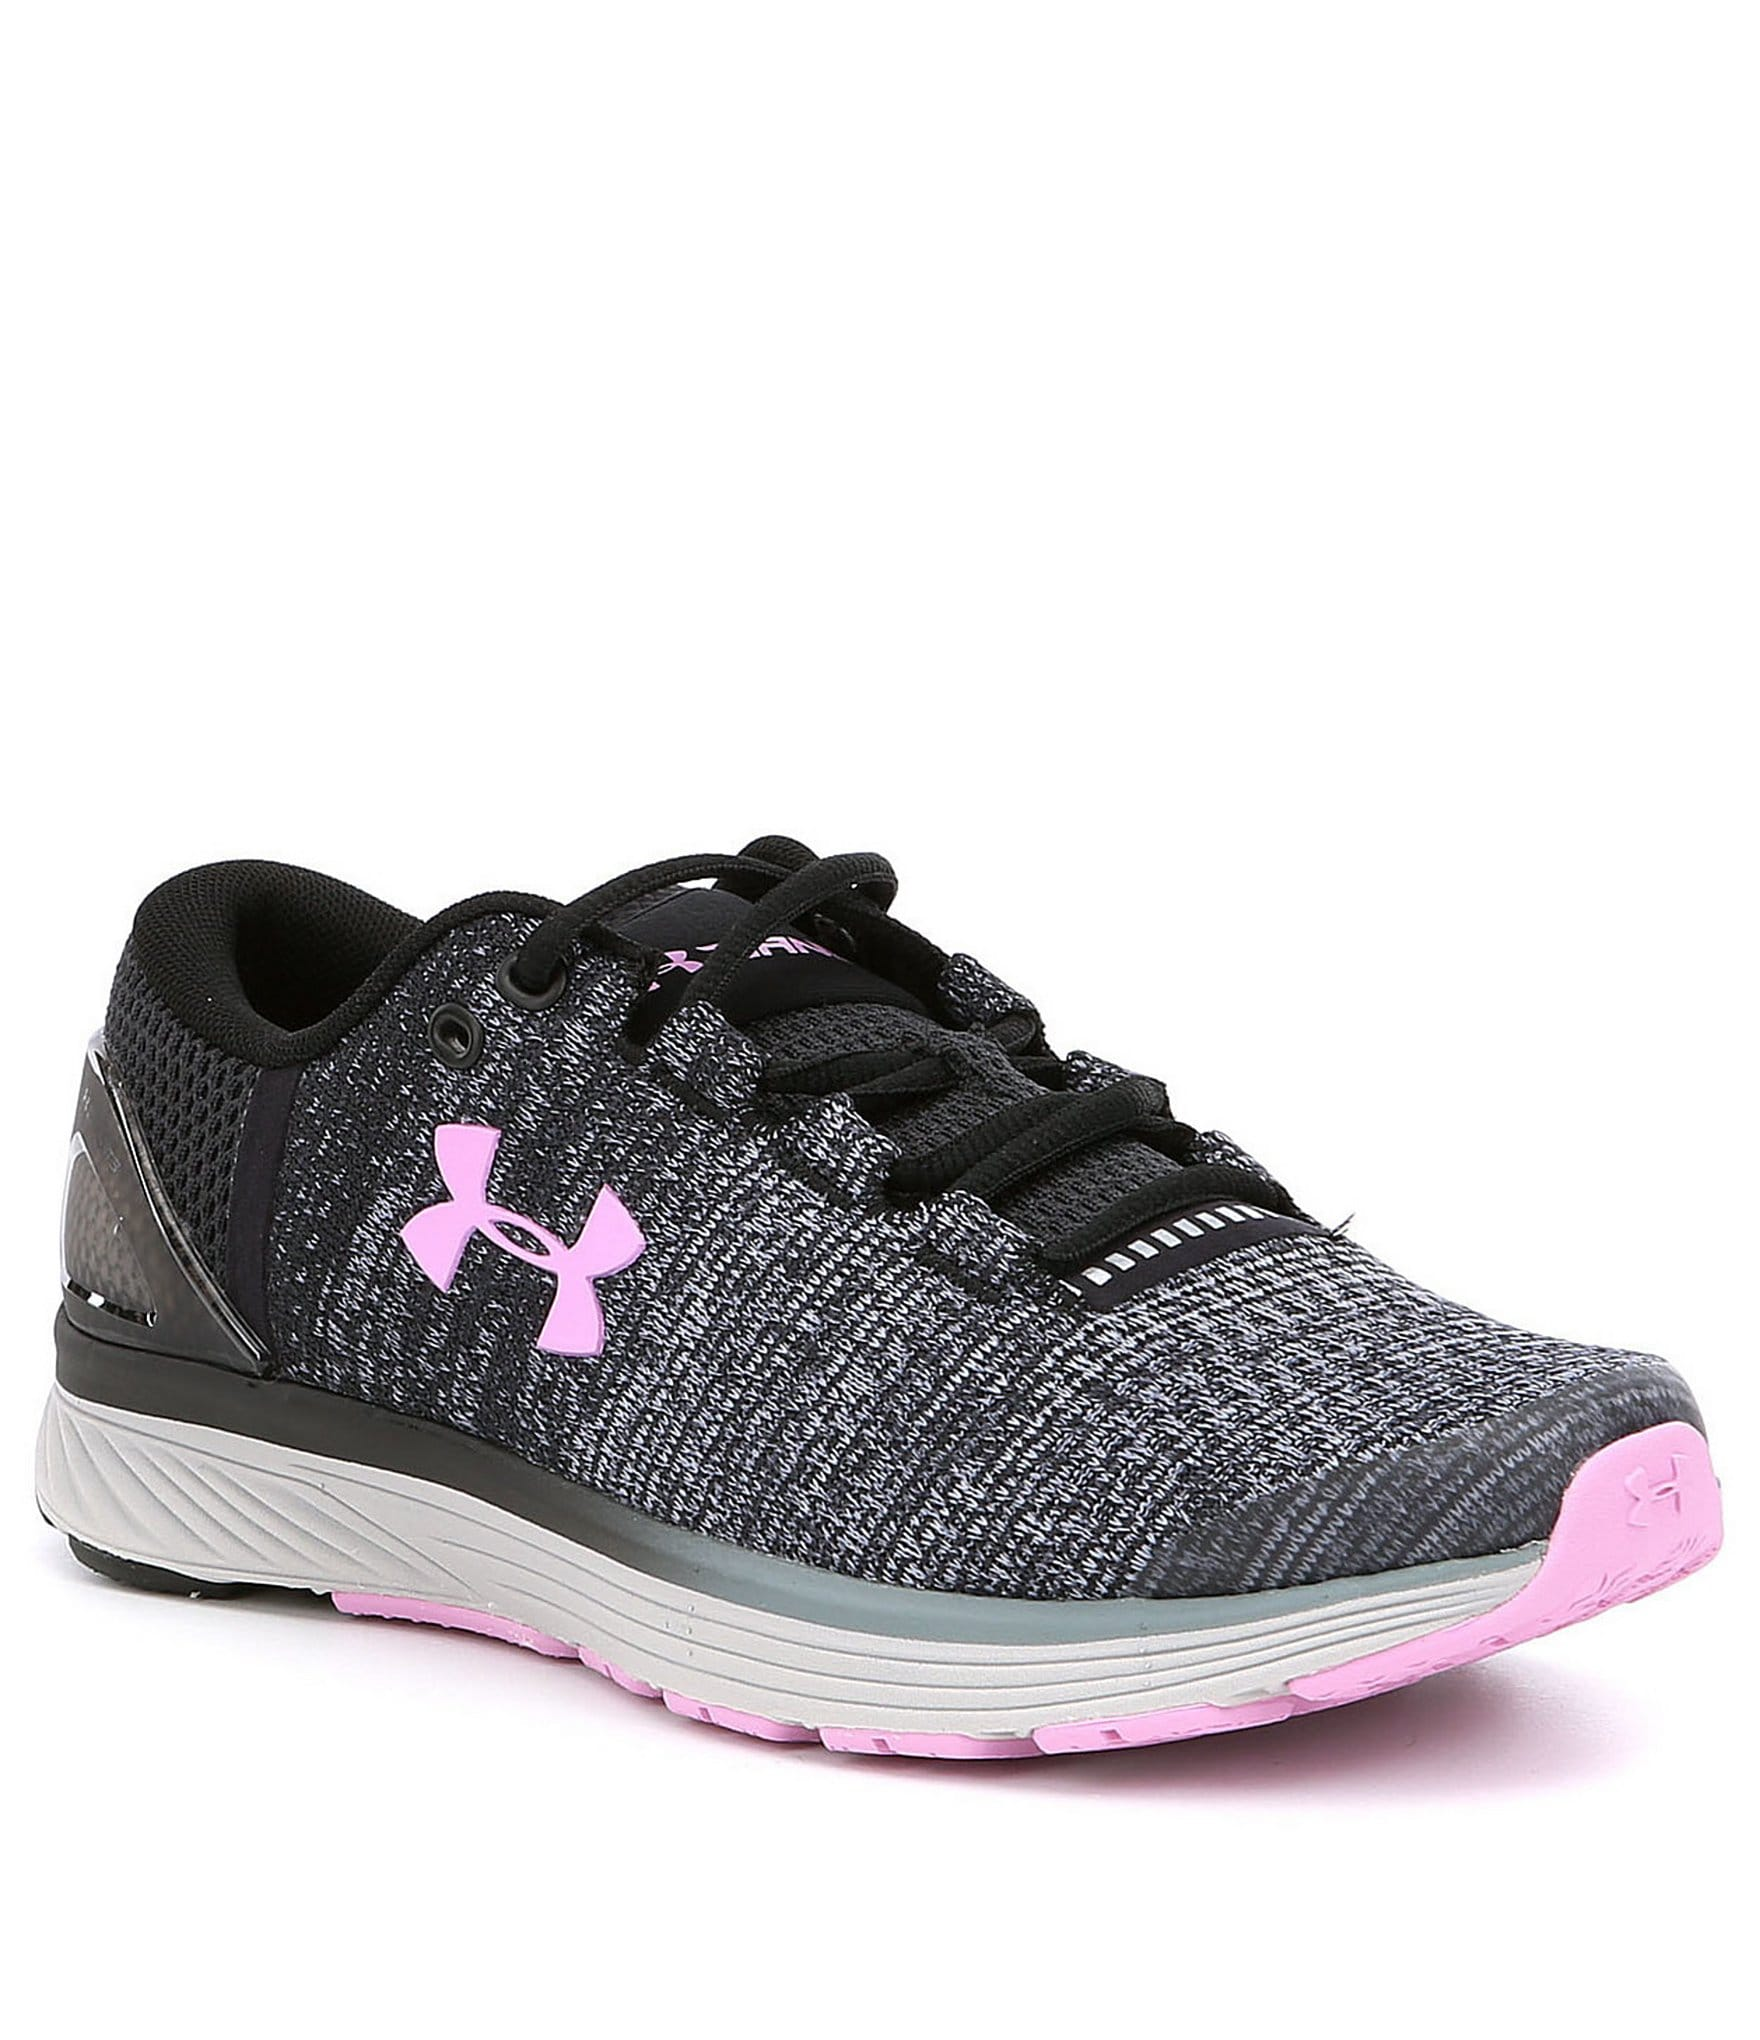 568e91414 Cheap toddler girl under armour tennis shoes Buy Online >OFF58 ...